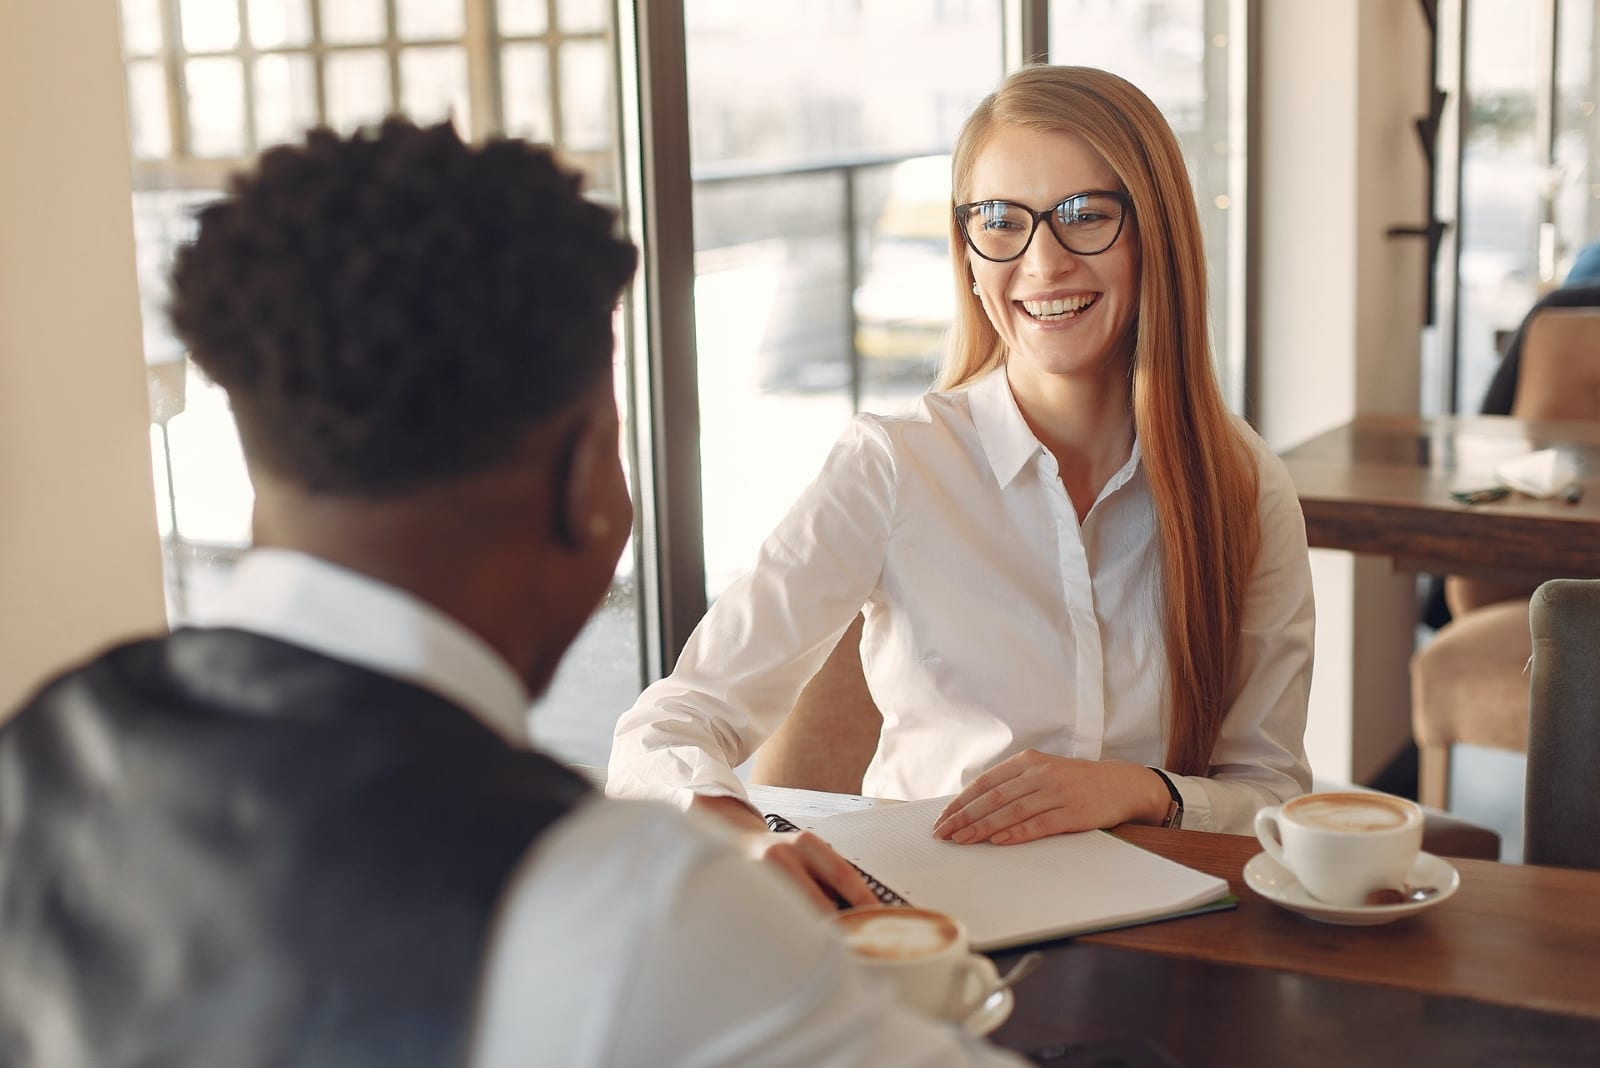 woman in white shirt smiling while looking at man